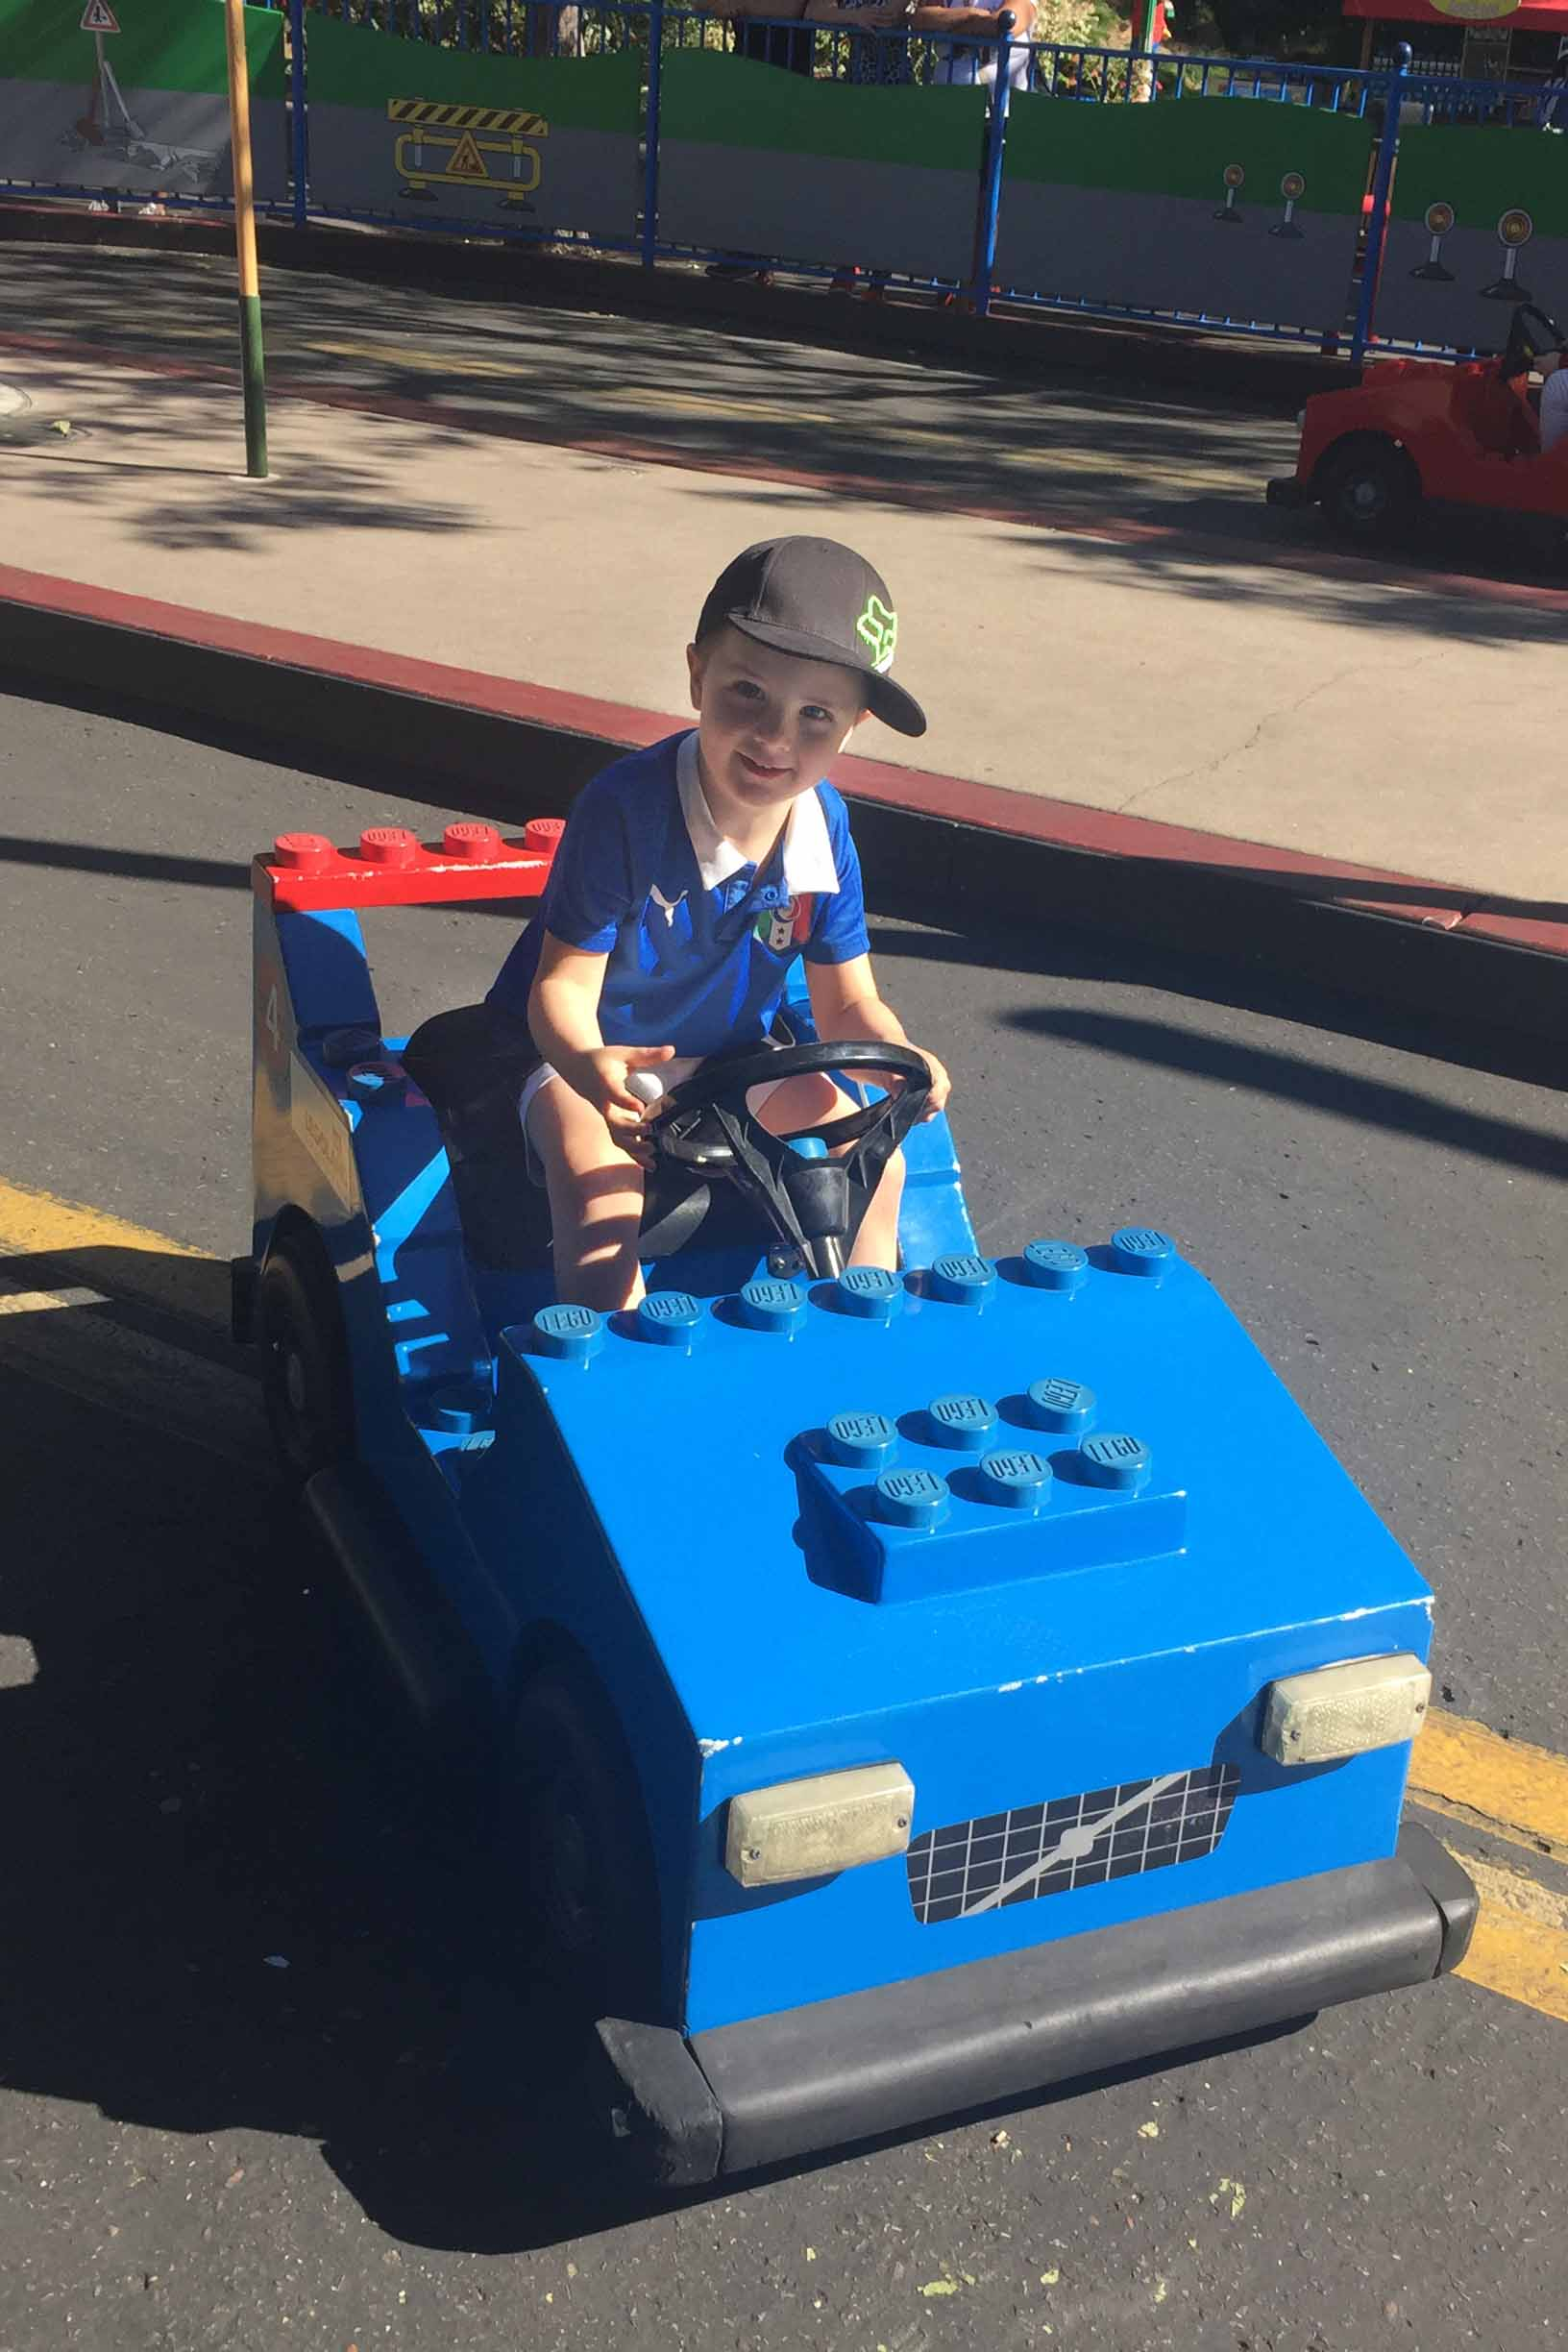 How To Get To Legoland Without A Car